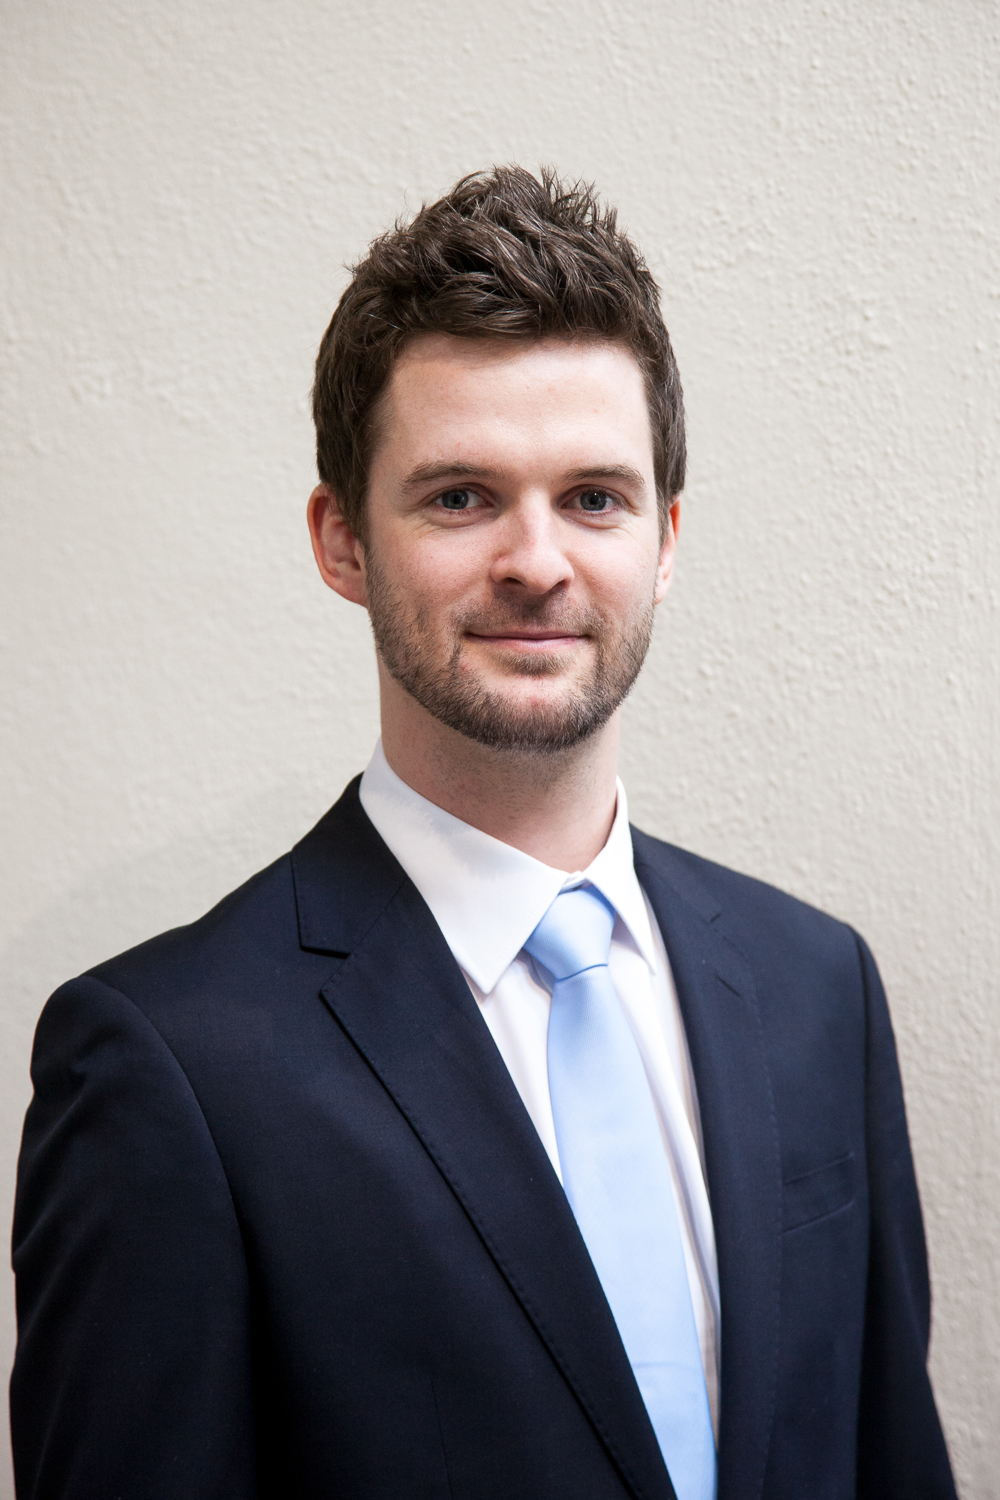 CIAN TWOMEY    ASSOCIATE    CIAN.TWOMEY@CSCONSULTING.IE